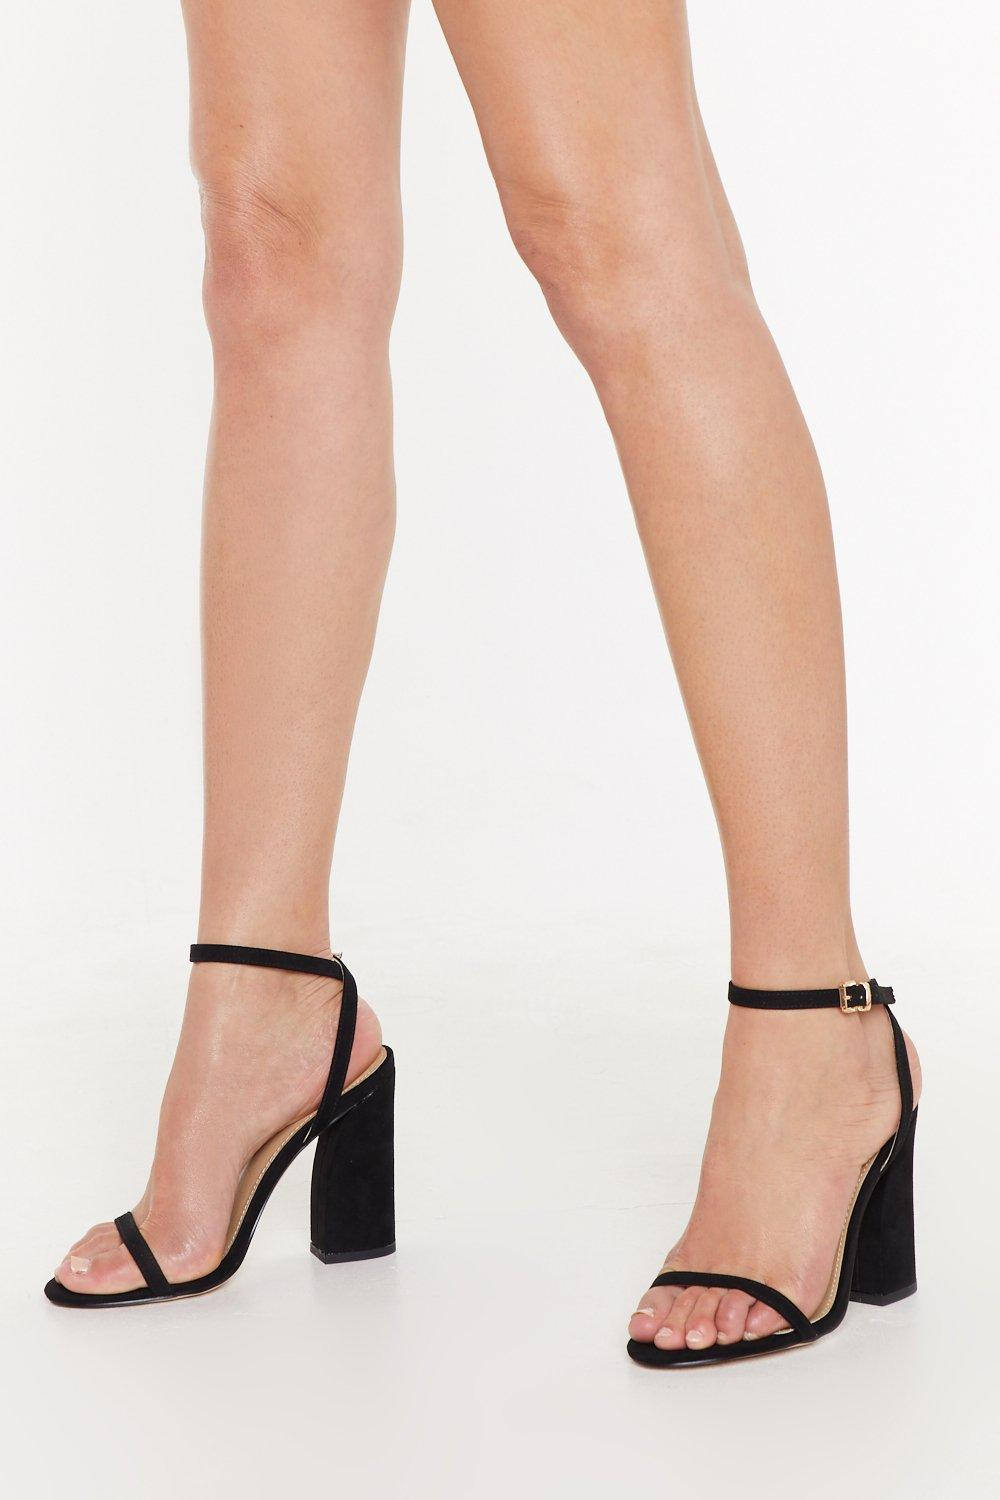 New Kid On The Block Faux Suede Strappy Sandals by Nasty Gal